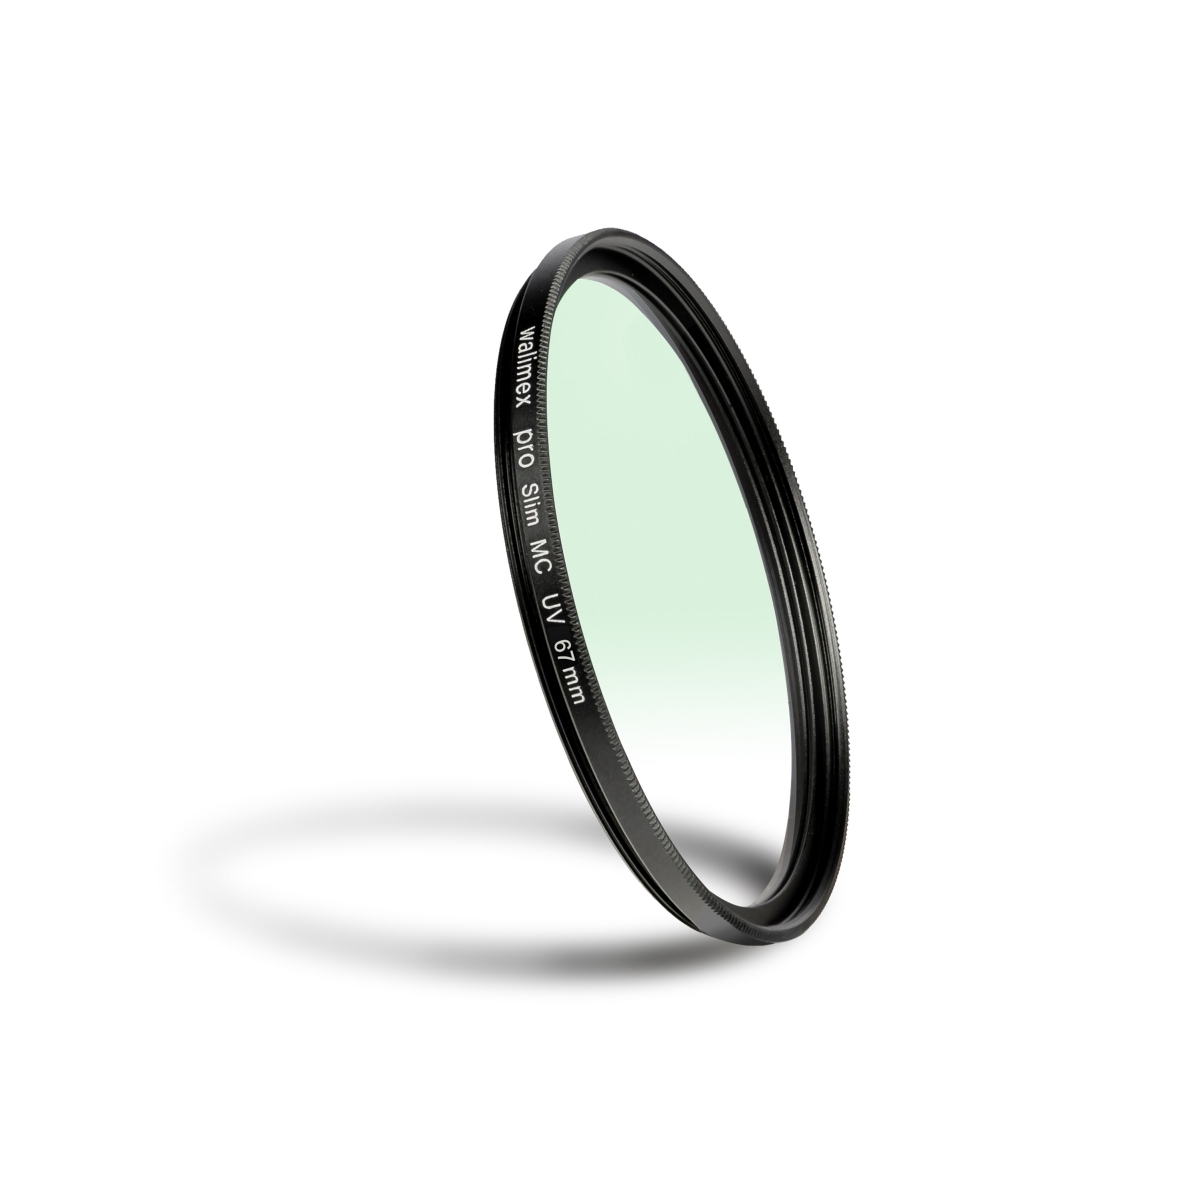 Walimex pro UV-Filter slim MC 67mm